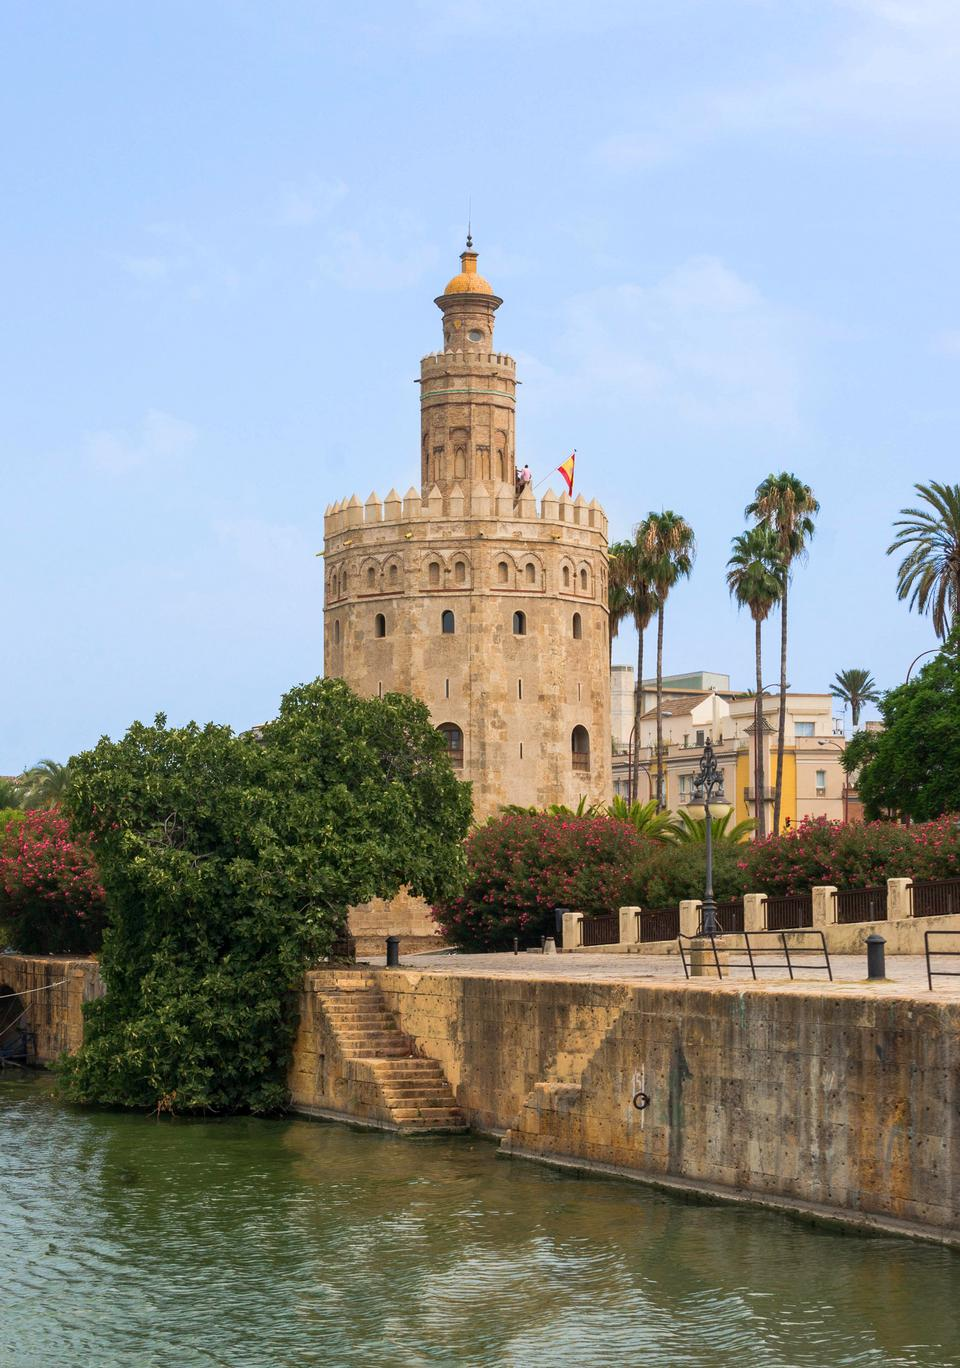 tower of gold on Guadalquivir River, Seville, Andalucia, Spain